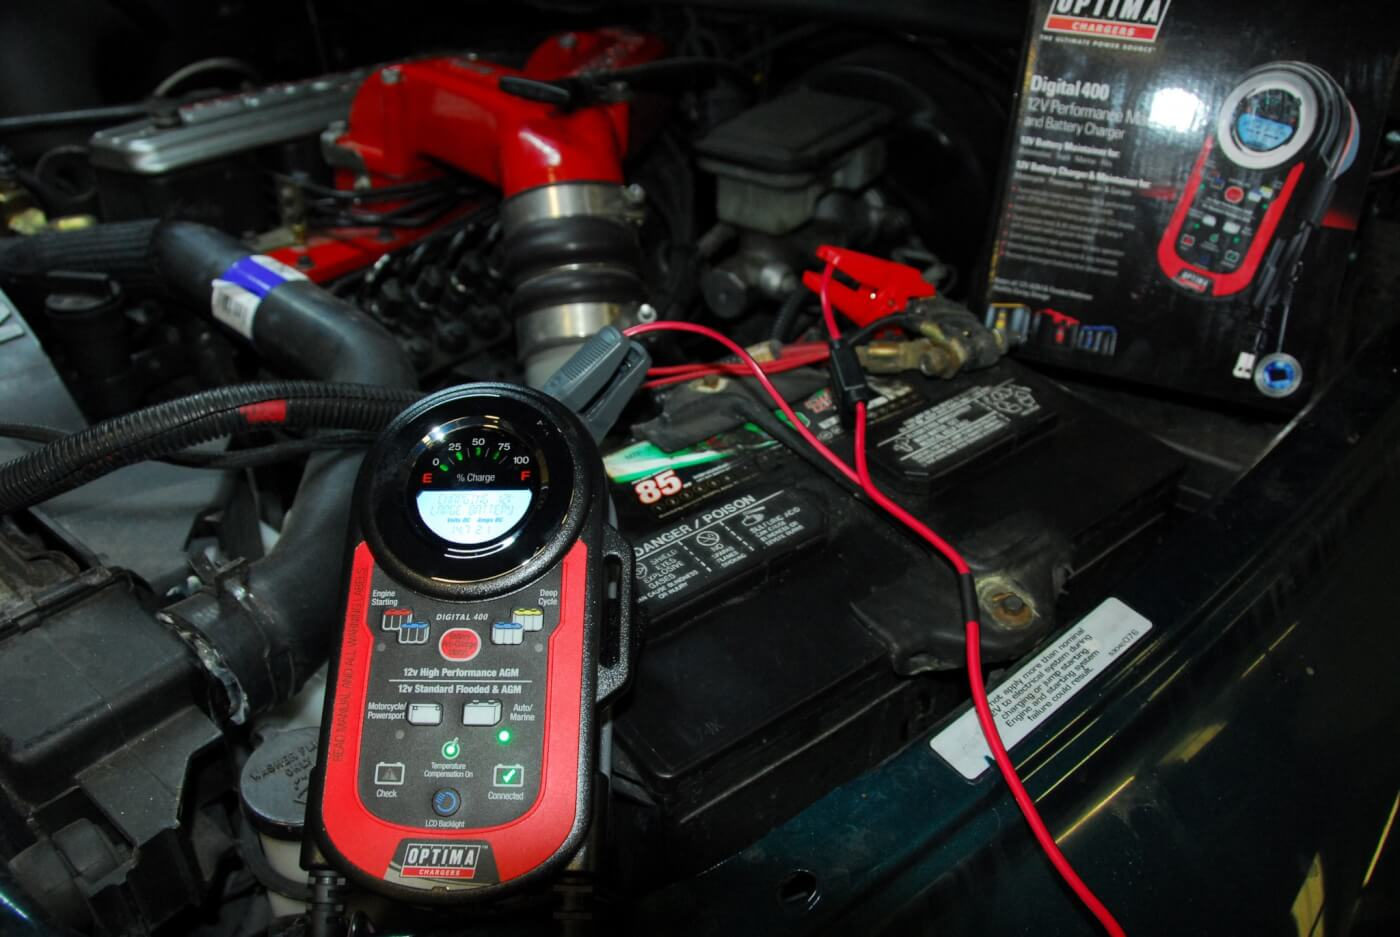 4. Optima's Digital 400 charger brought back the old batteries briefly, enough to get the engine started. But further testing indicated they were just too far gone. Putting a charger on your truck to keep the batteries topped off is a wise move, especially if it has a number of aftermarket accessories that pull more current.